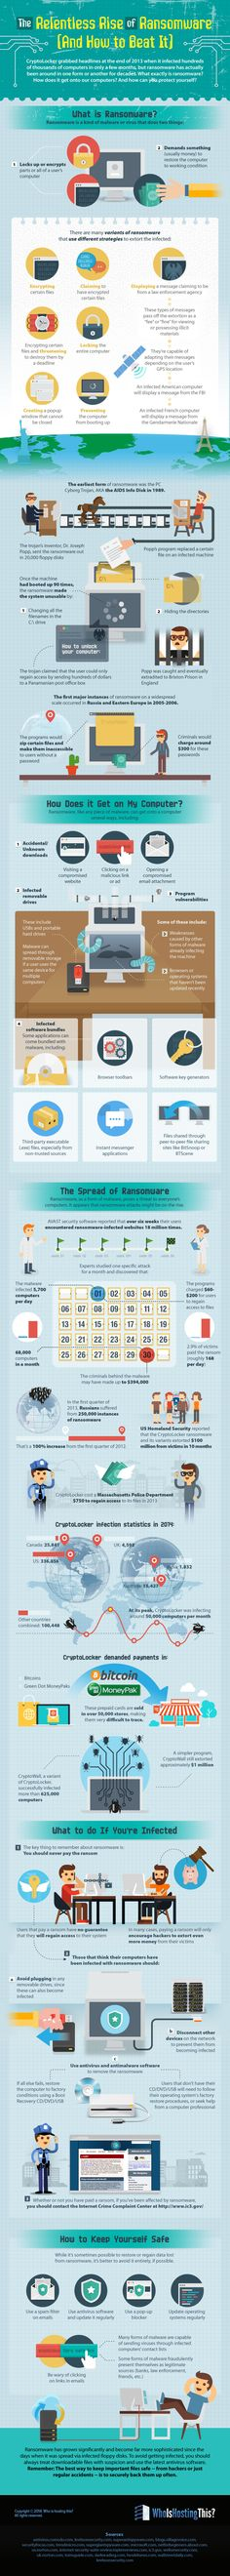 Ransomware Keeps Growing – How Can You Protect Yourself?